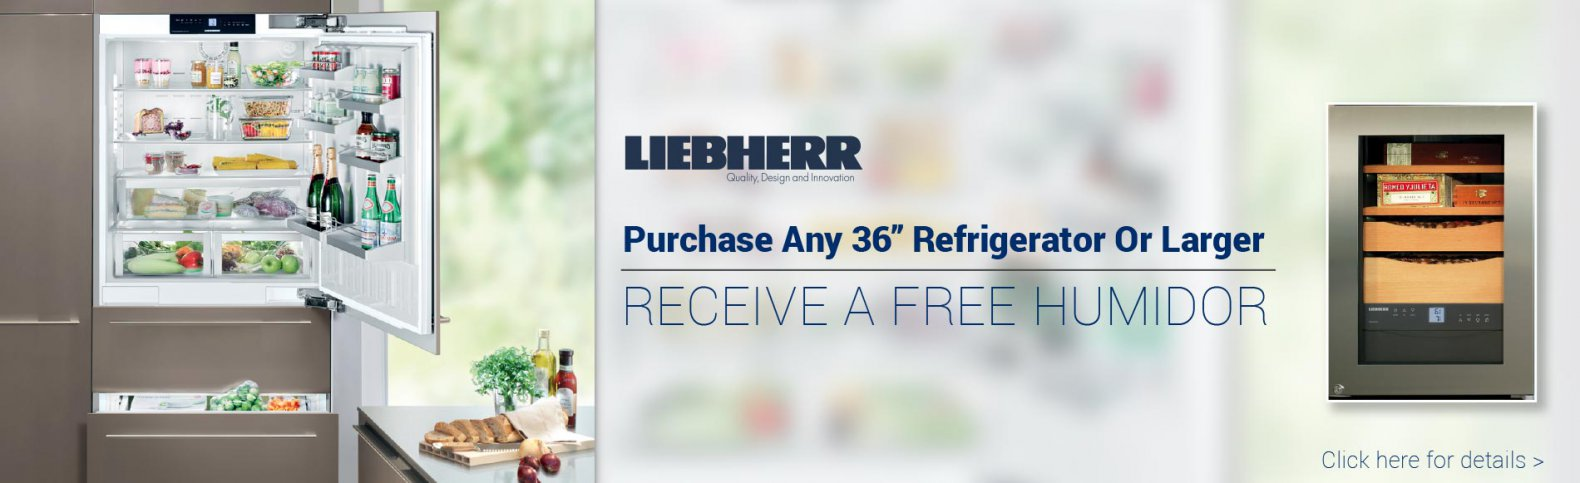 Purchase any 36 Inch Refrigerator or Larger, Receive a Free Humidor